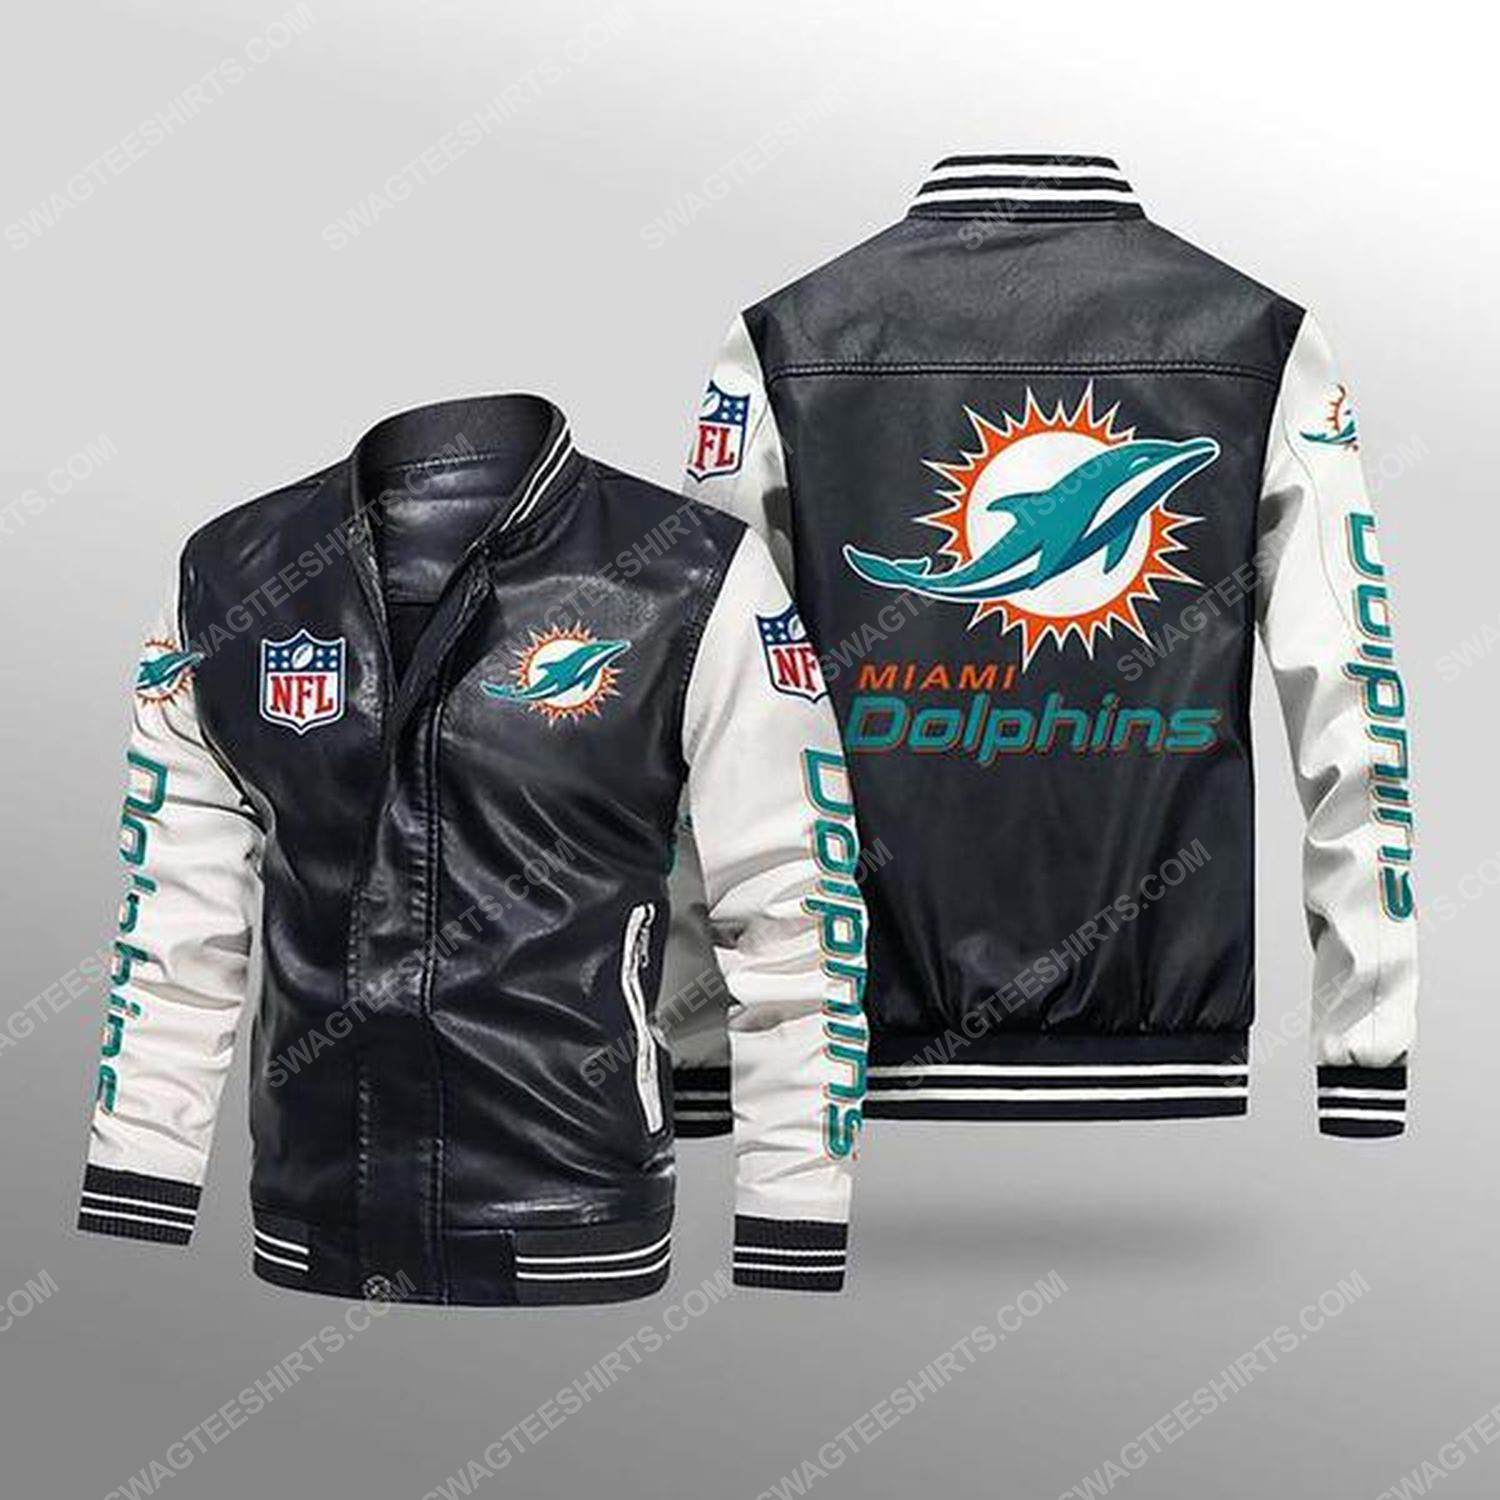 Miami dolphins all over print leather bomber jacket - white